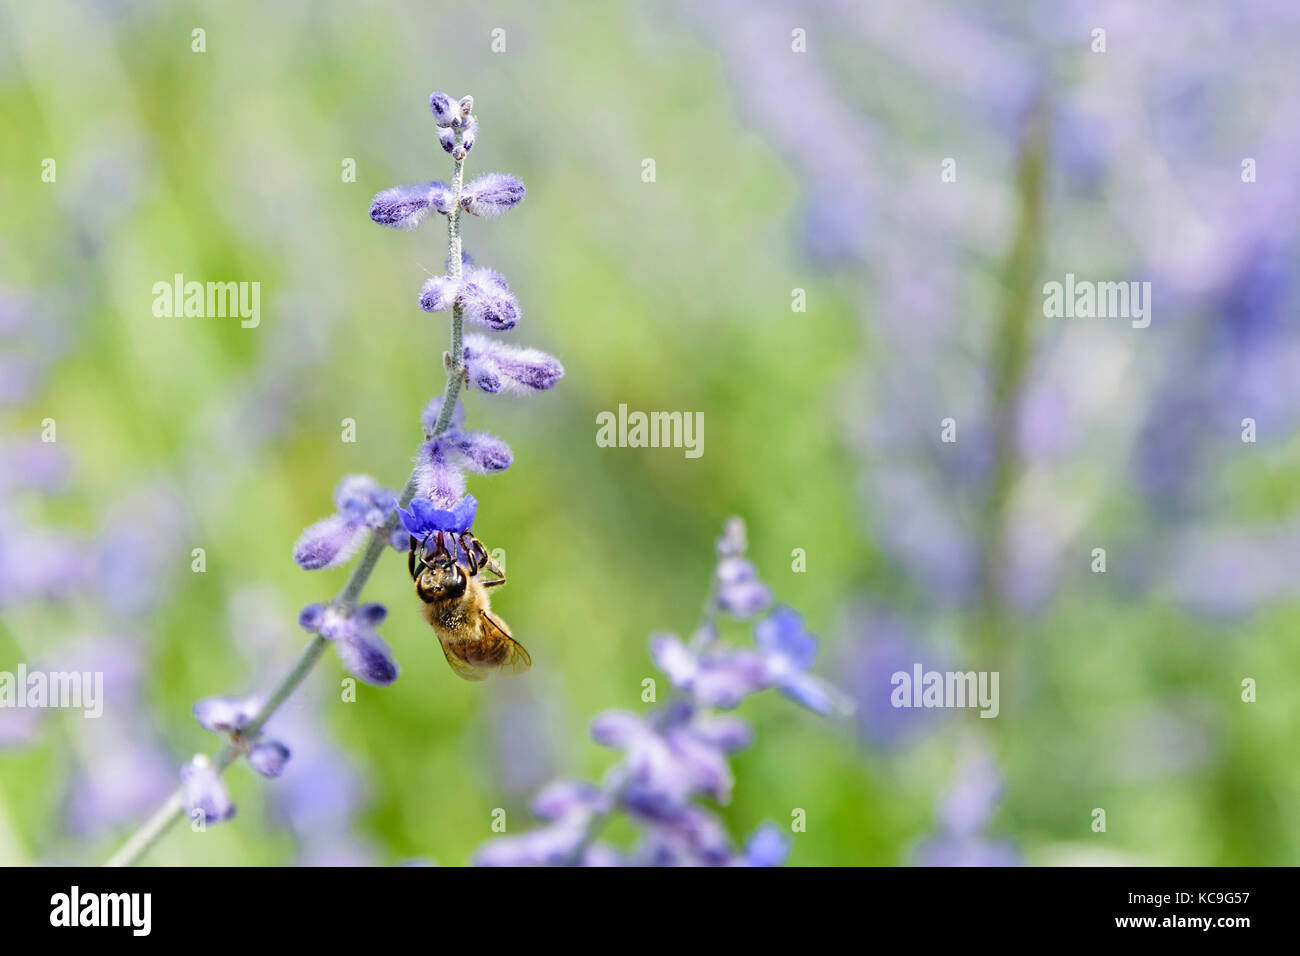 Close-Up Of Bee Standing Upside Down And Collecting Pollen From Russian Sage Flowers Or Perovskia Atriplicifolia - Stock Image